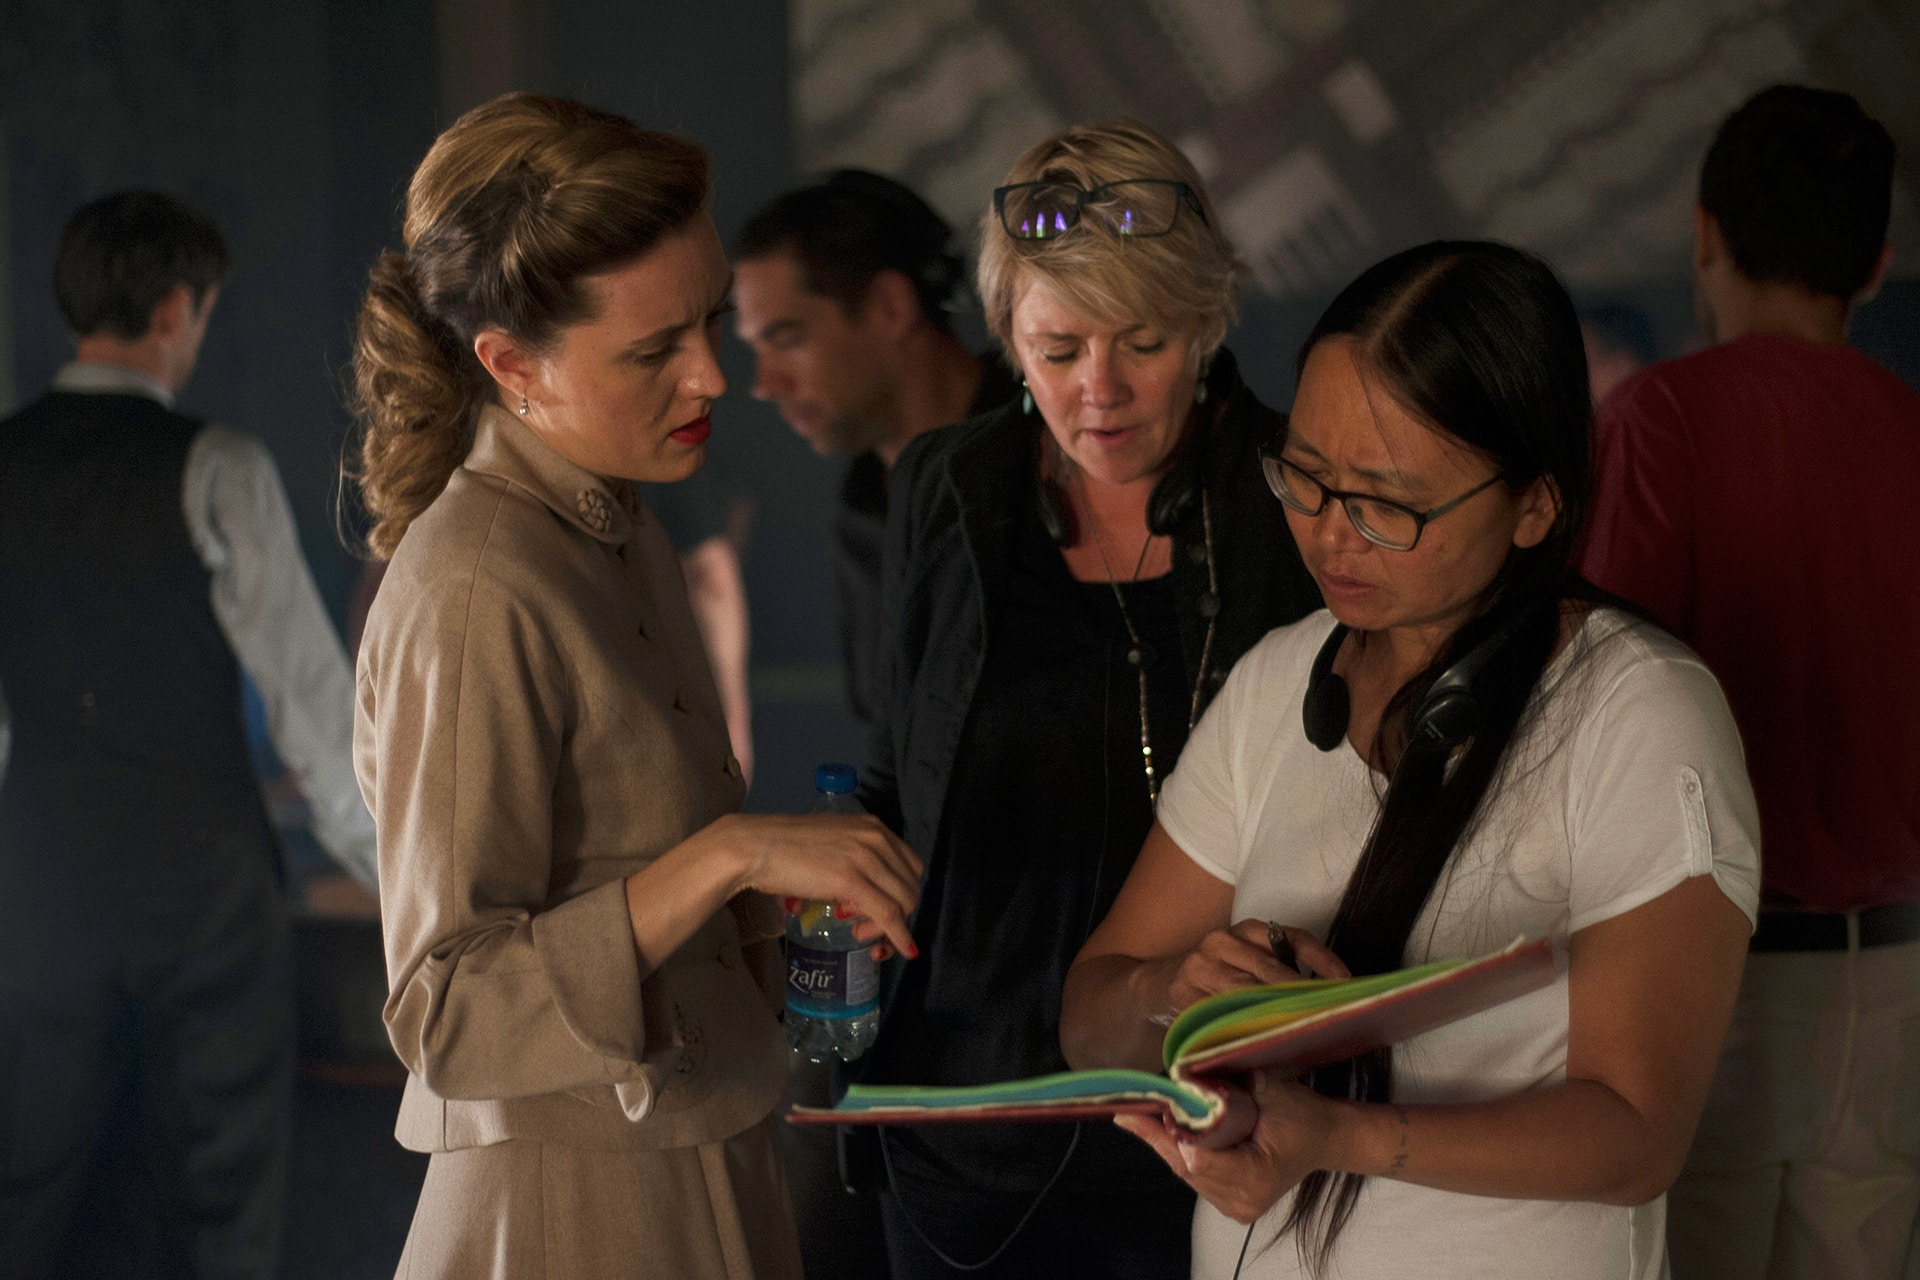 Evelyne Brochu, Director Amanda Tapping and Script Supervisor Winnie Jong look over Aurora's lines on the set of X Company.